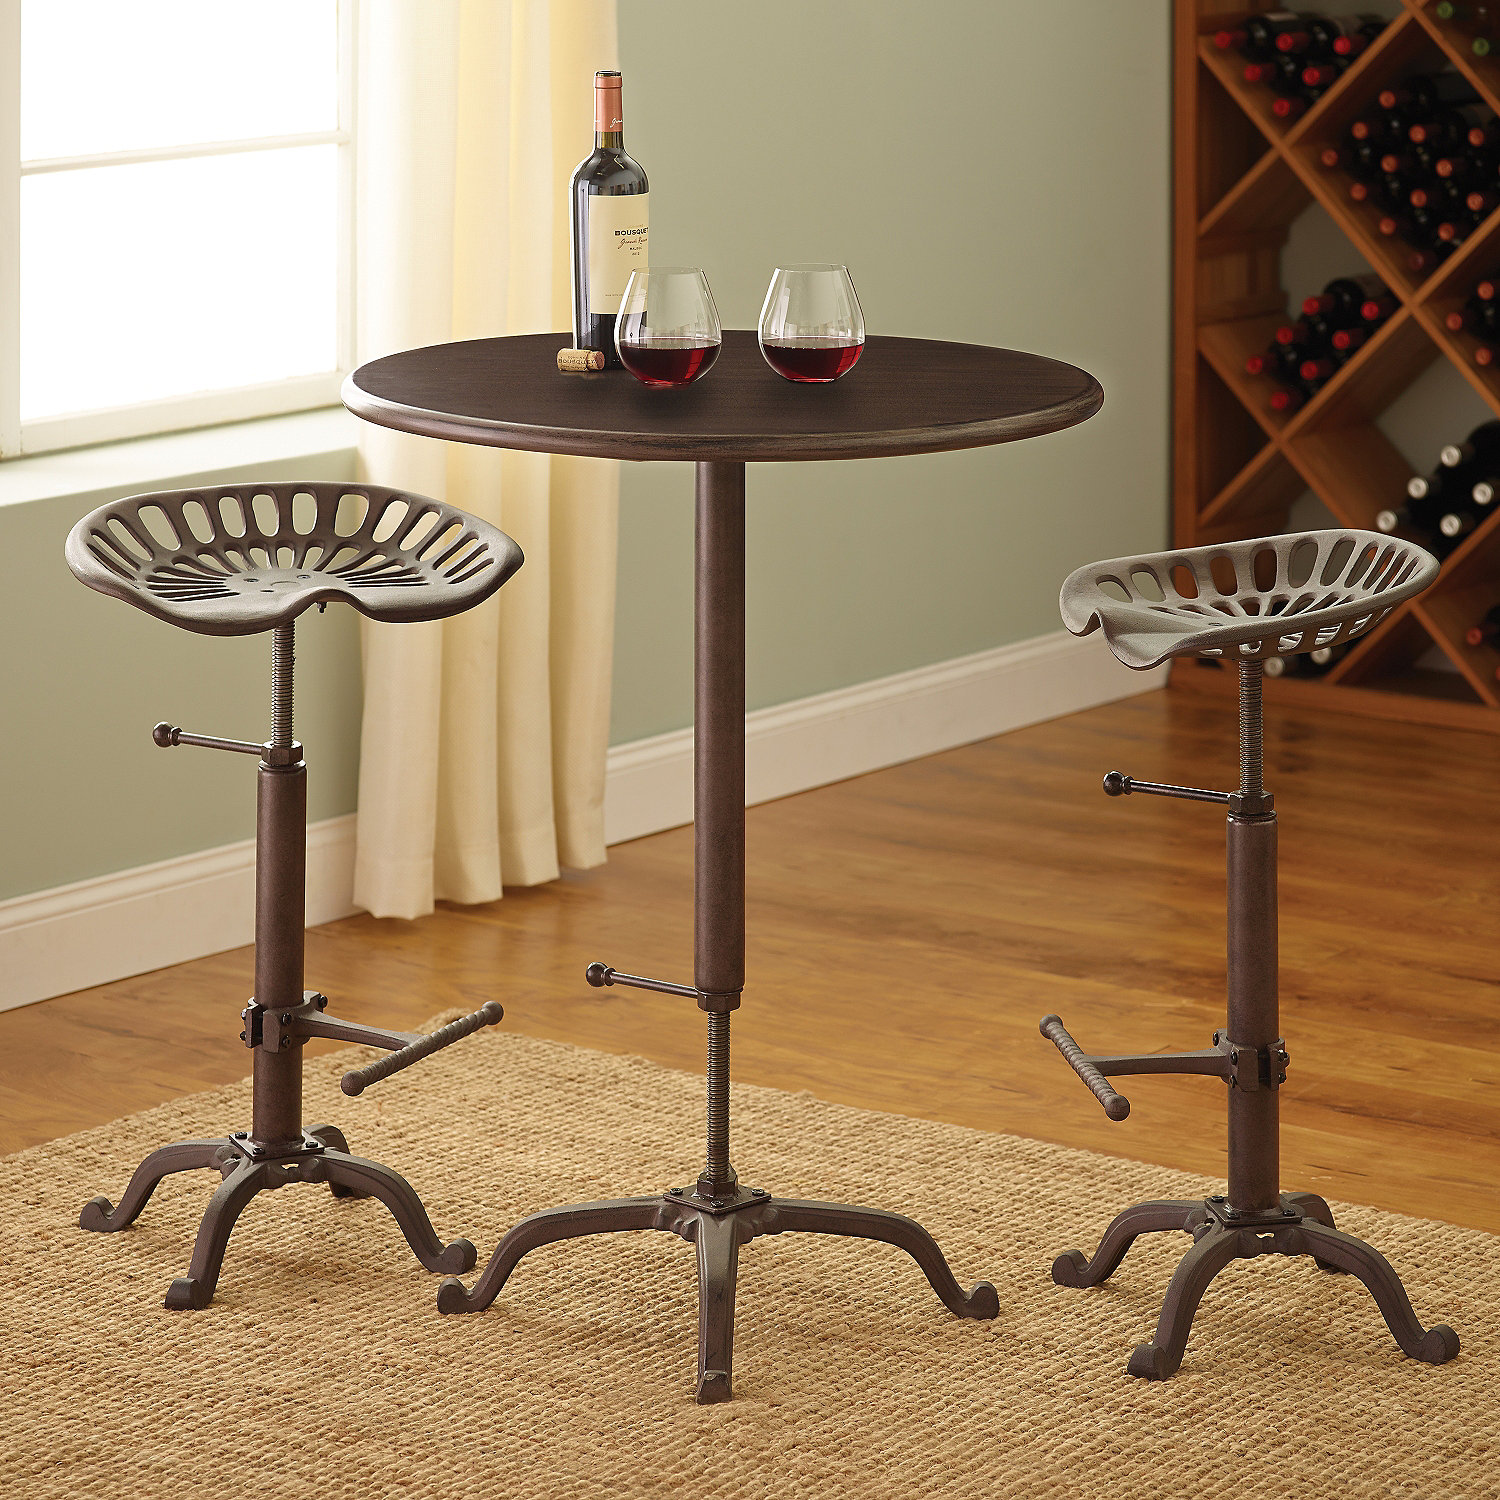 Industrial Pub Table and Tractor Stool Set - Wine Enthusiast